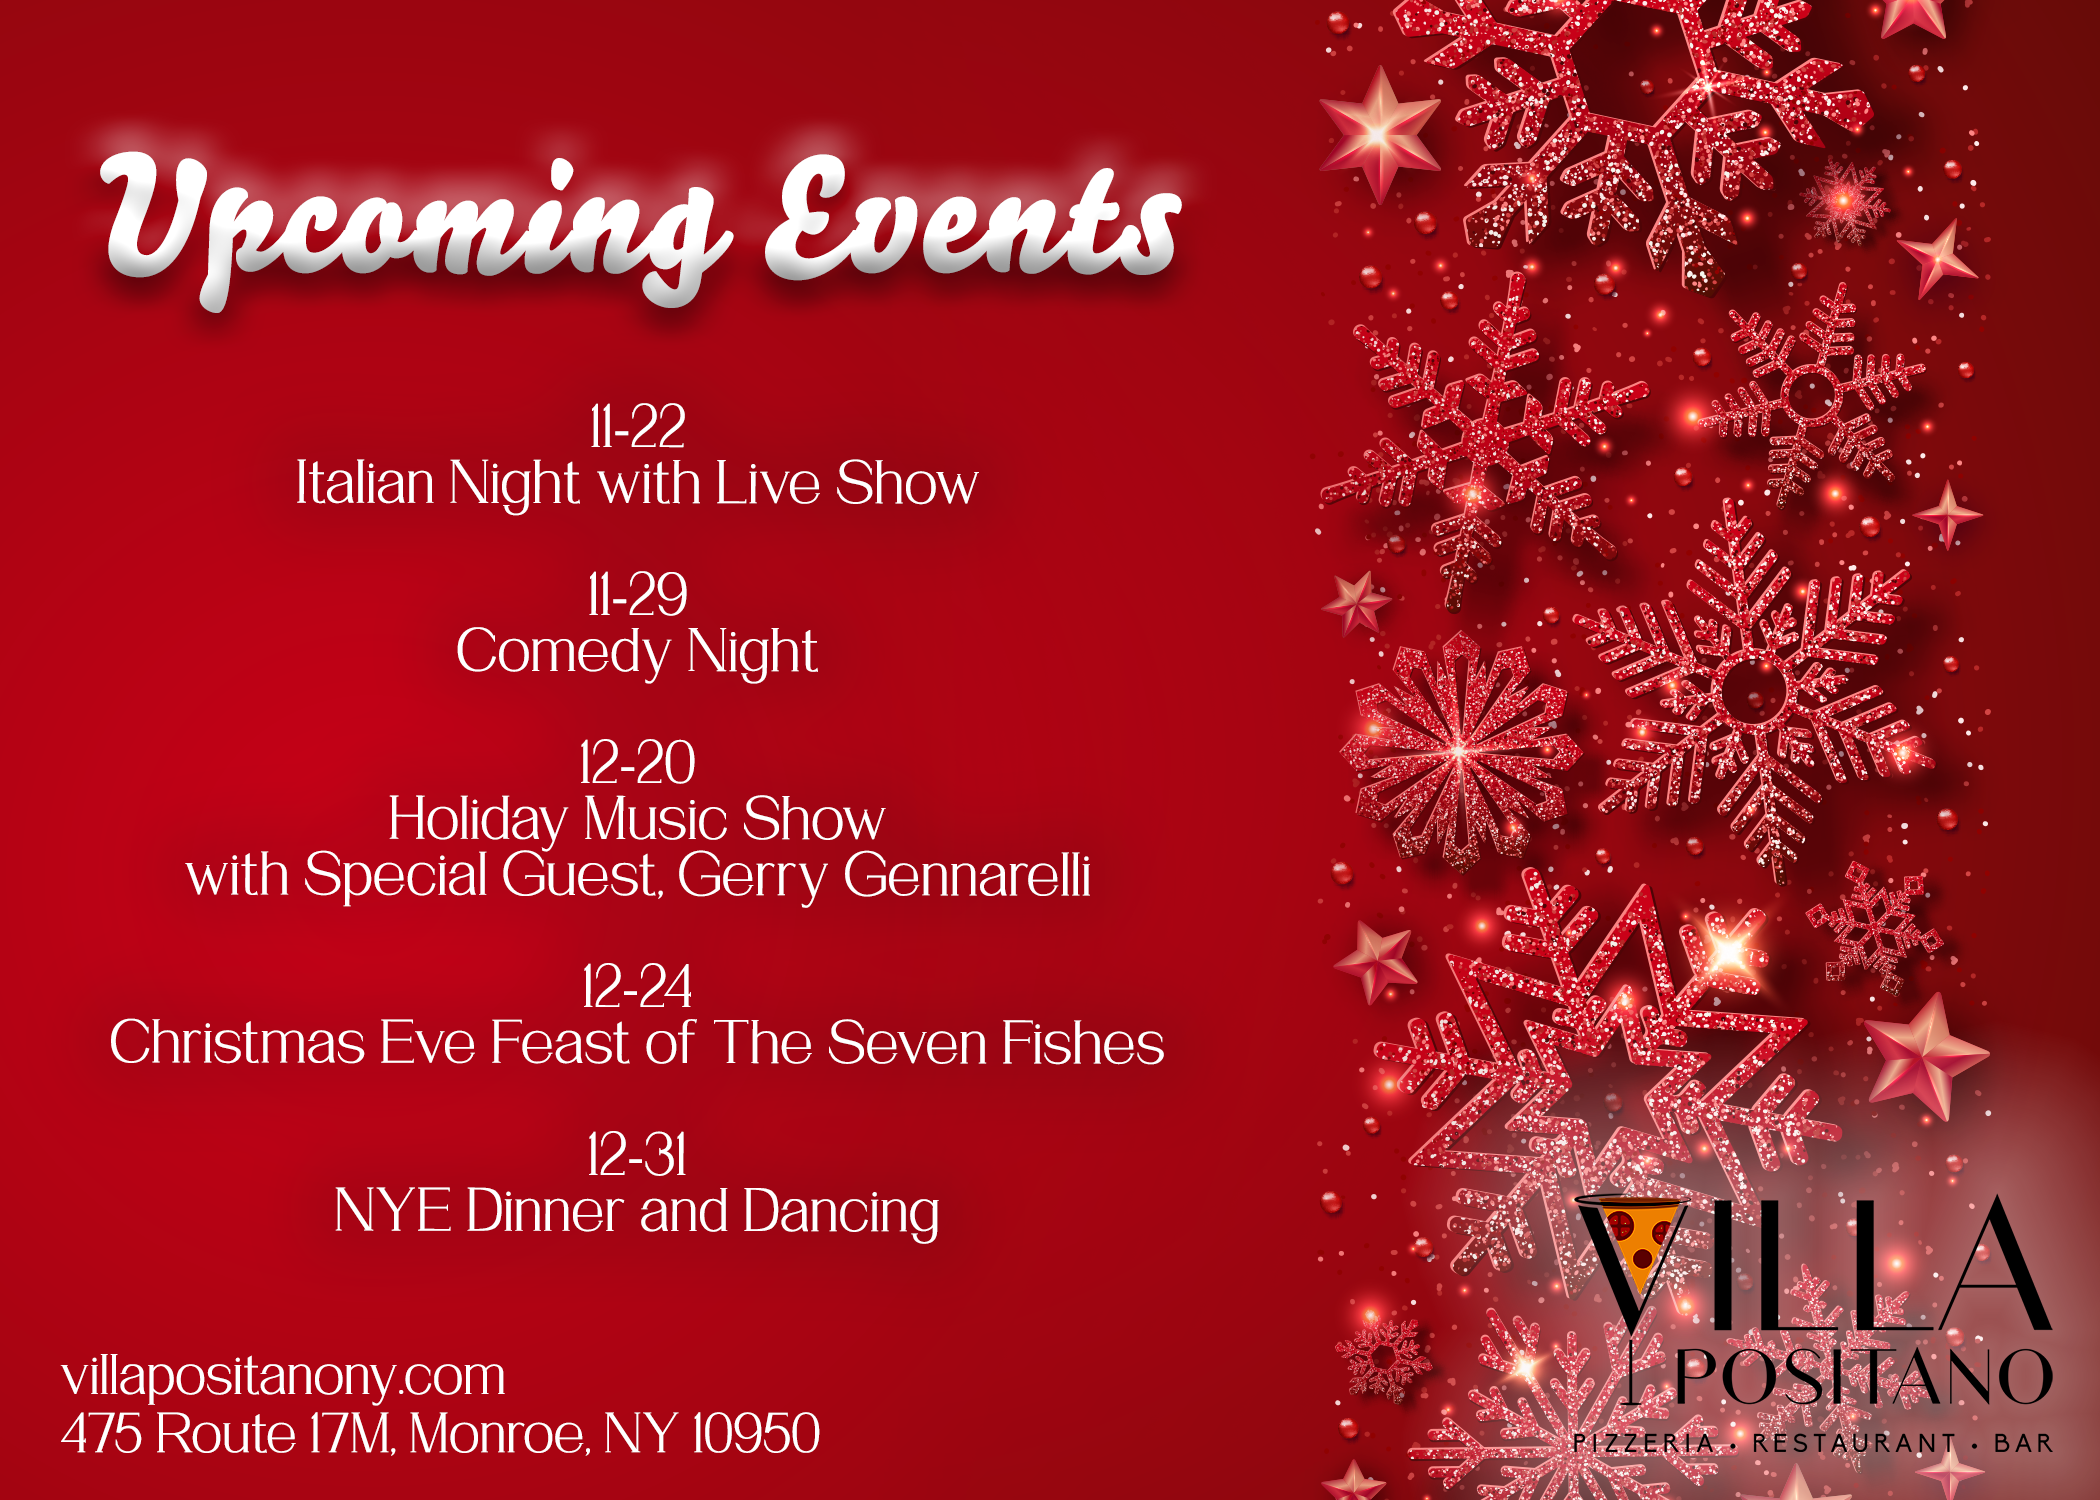 Upcoming Events | 11/22 Italian Night with live show |  11/29 Comedy Night | 12/20 Holiday Music Show with special guest Gerry Gennarelli | 12/24 Christmas Eve Feast of The Seven Fishes | 12/31 NYE Dinner and Dancing